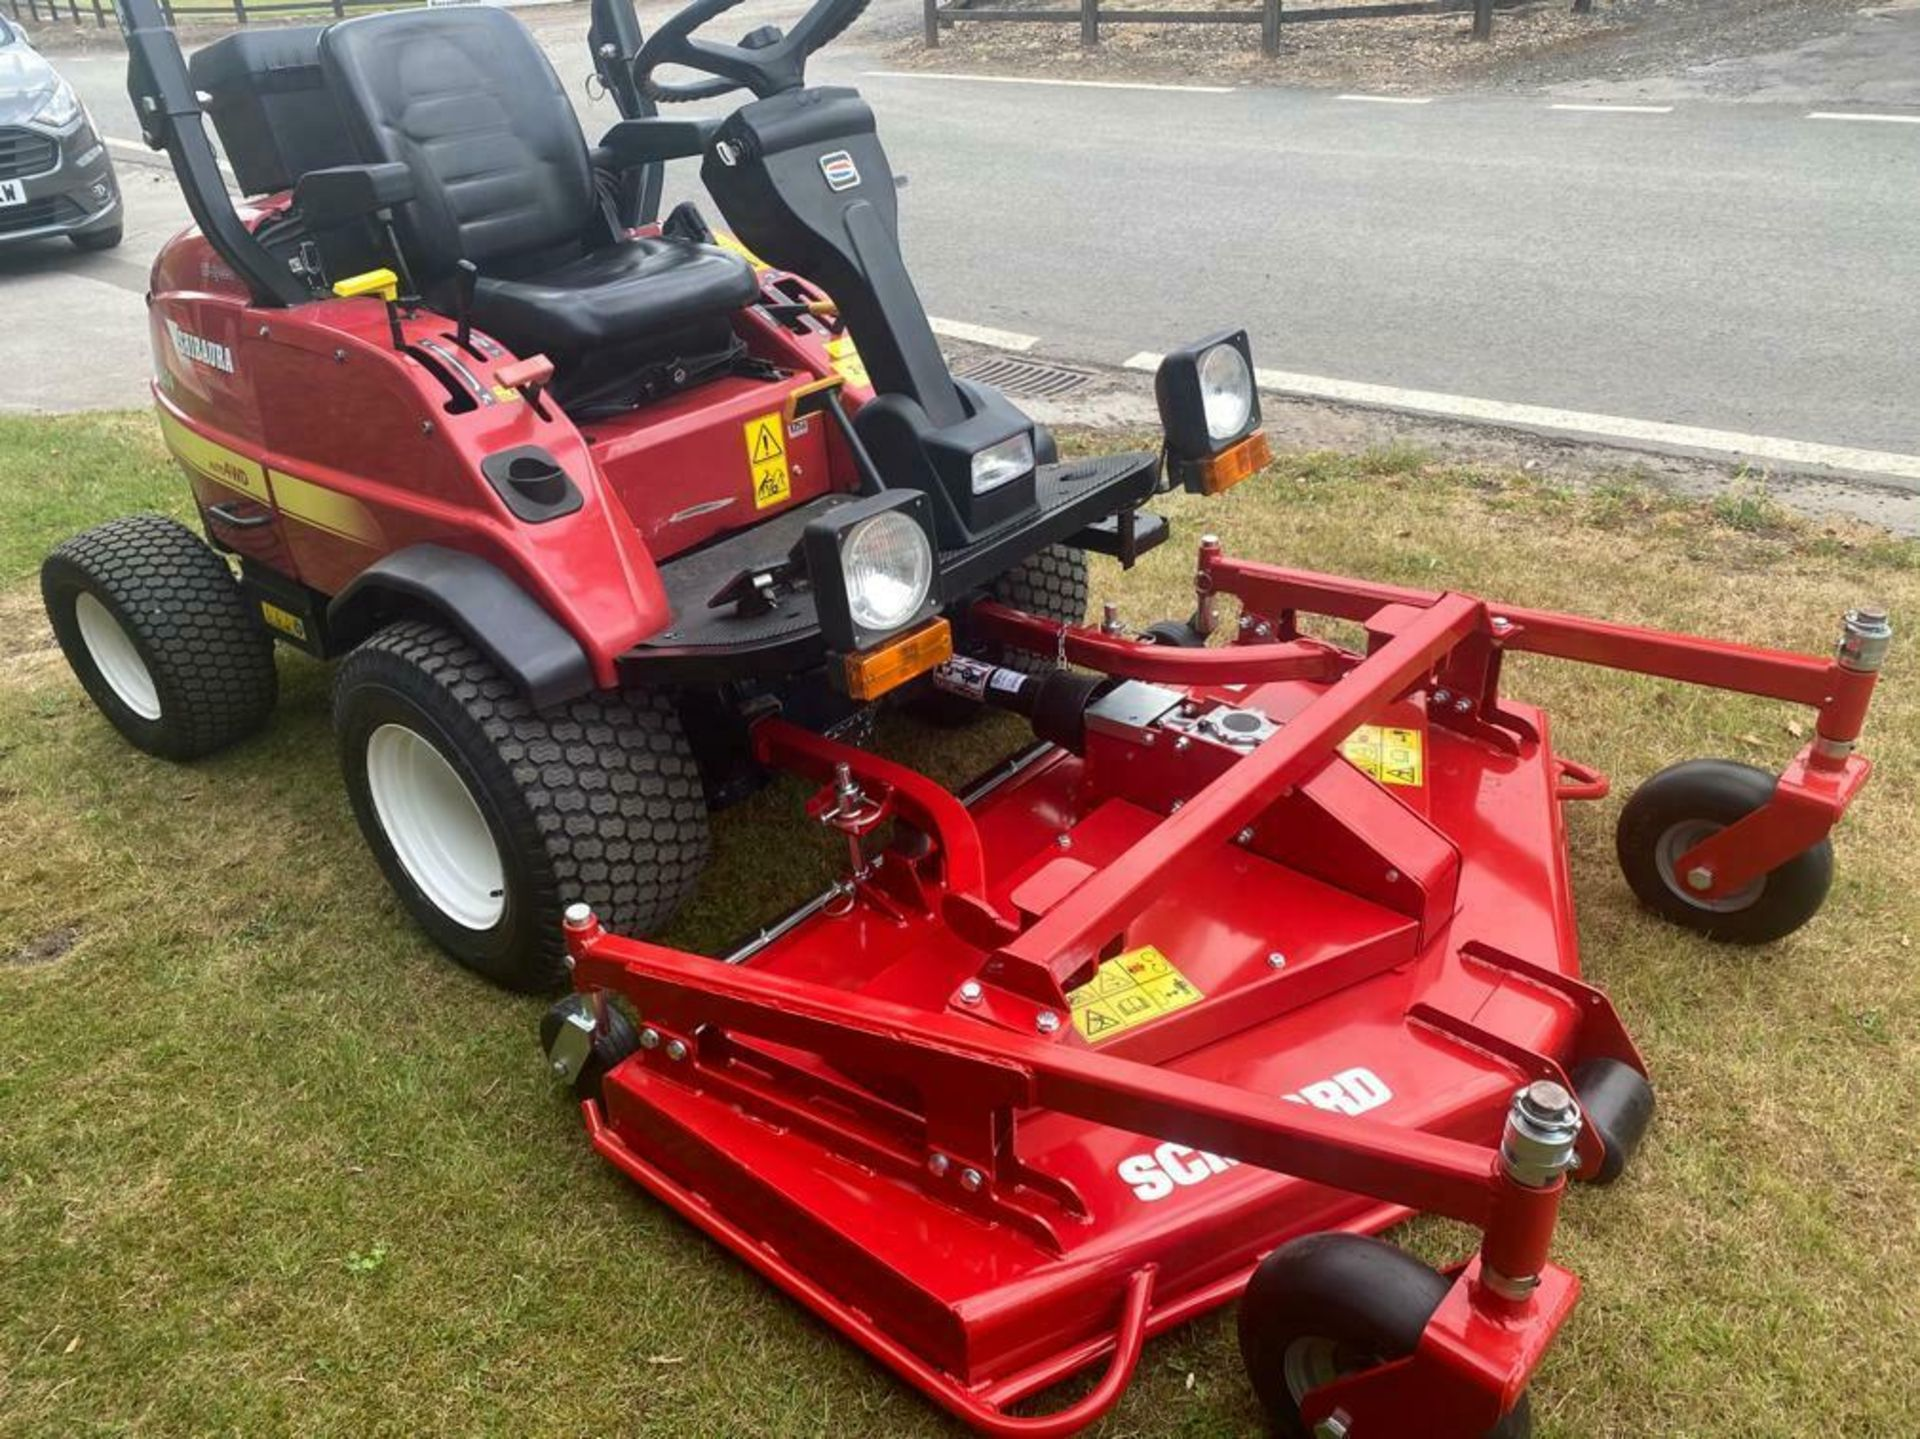 """Lot 139 - SHIBAURA CM374 UPFRONT ROTARY MOWER, 37HP, BRAND NEW 60"""" CUT DECK NEVER USED, DIESEL, YEAR 2014"""